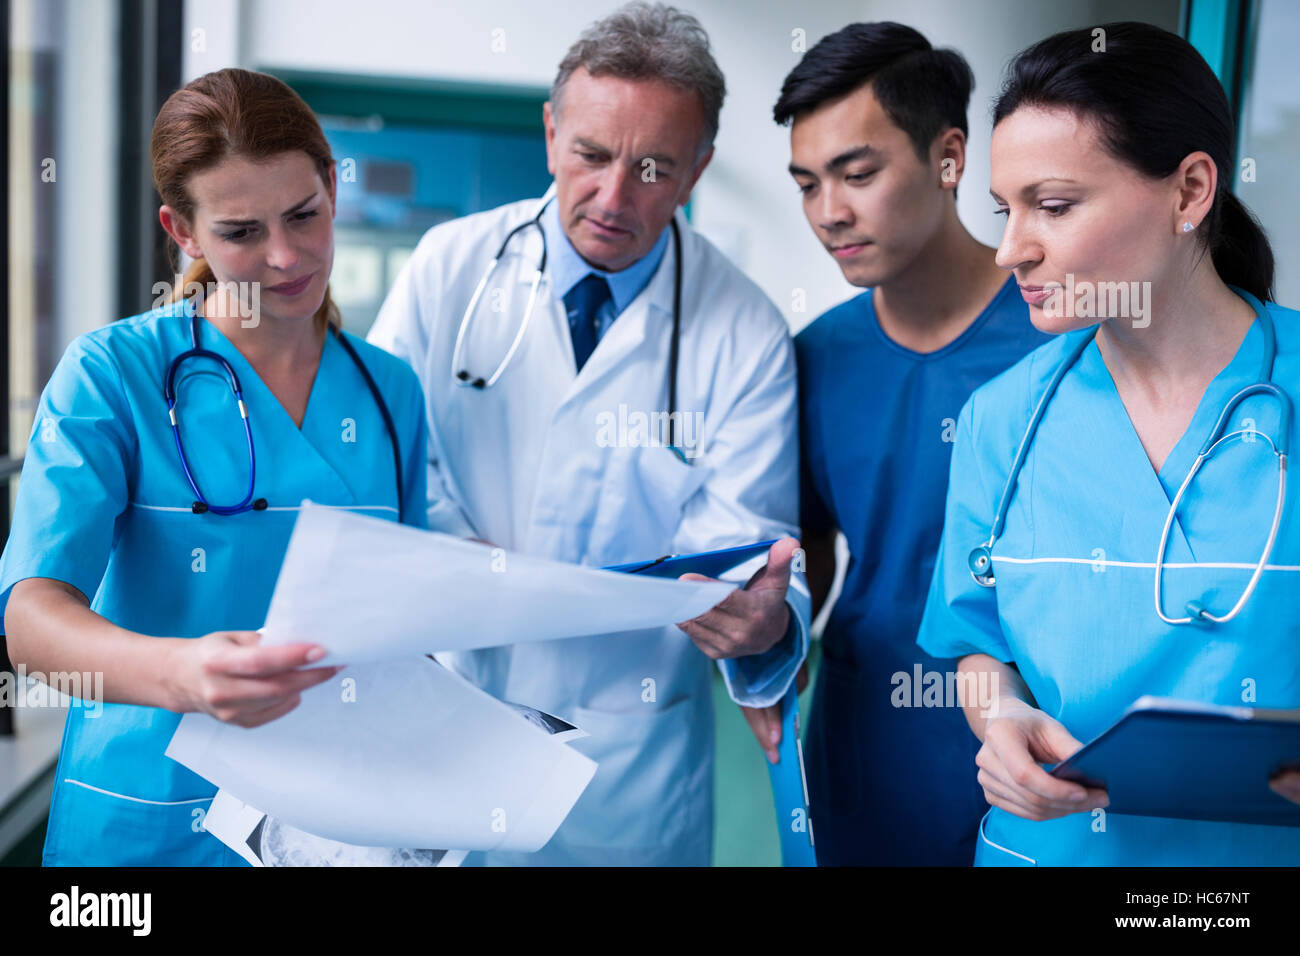 Doctor and surgeons discussing with report in surgical room - Stock Image